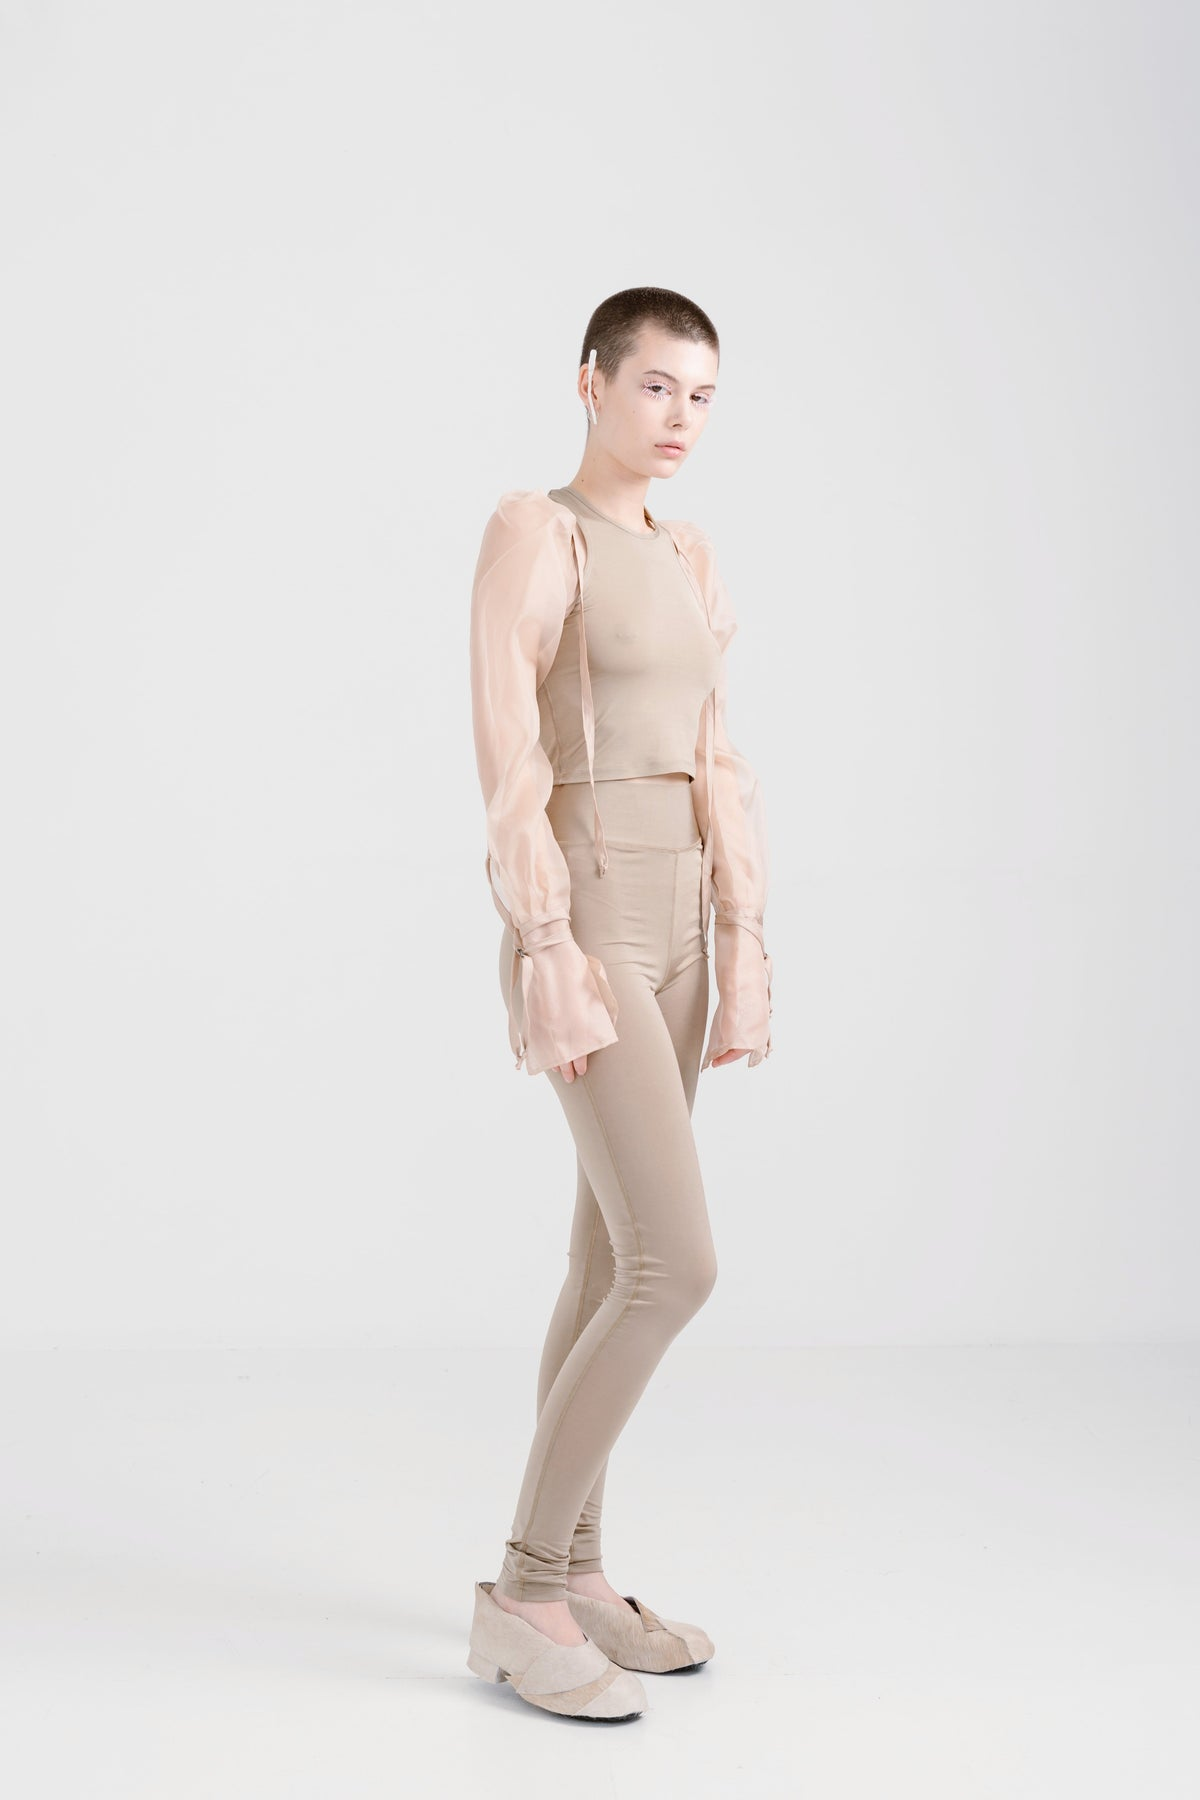 Lela Jacobs Late legs Gold and Black Shop online Auckland Stockists Parnell